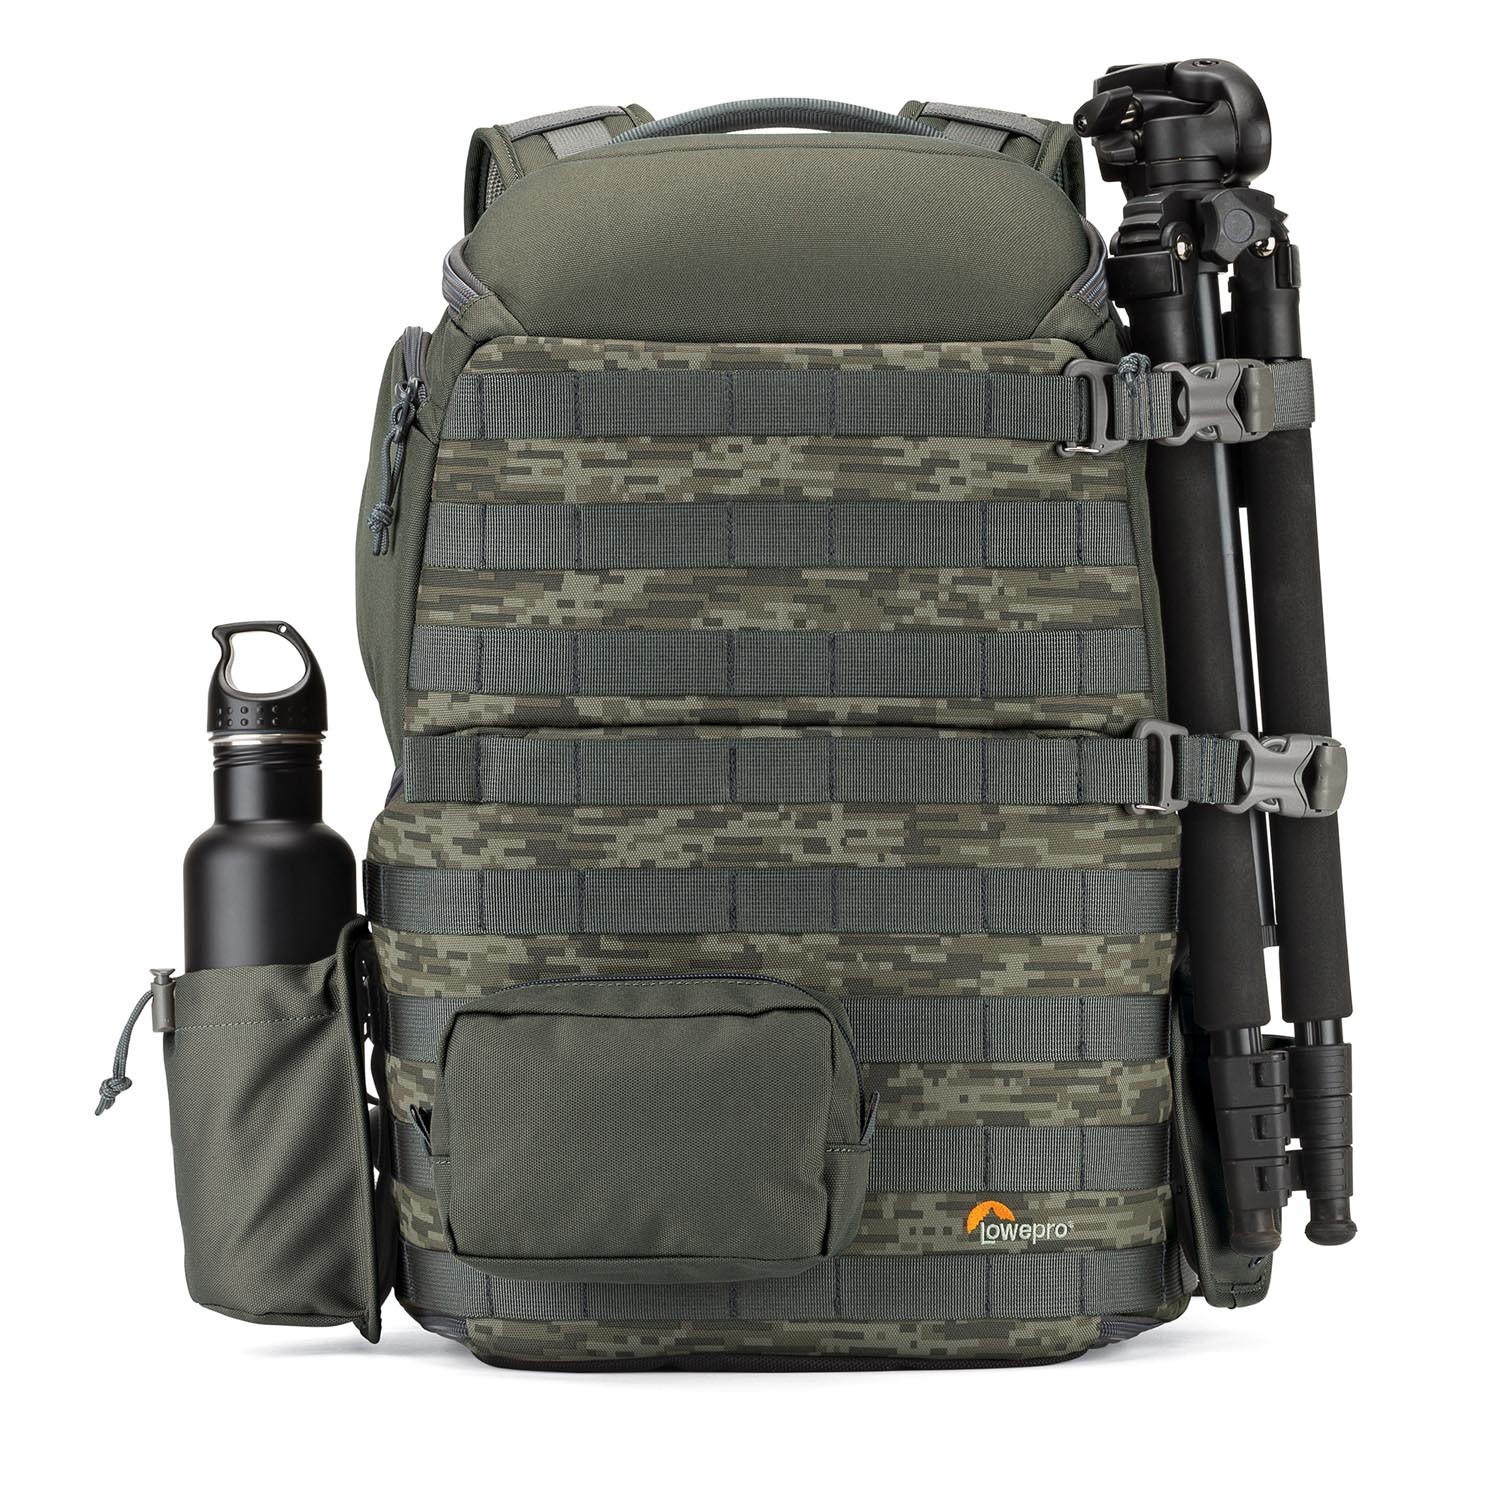 protactic_450aw_le_accessoriesattached_front_web_2.jpg